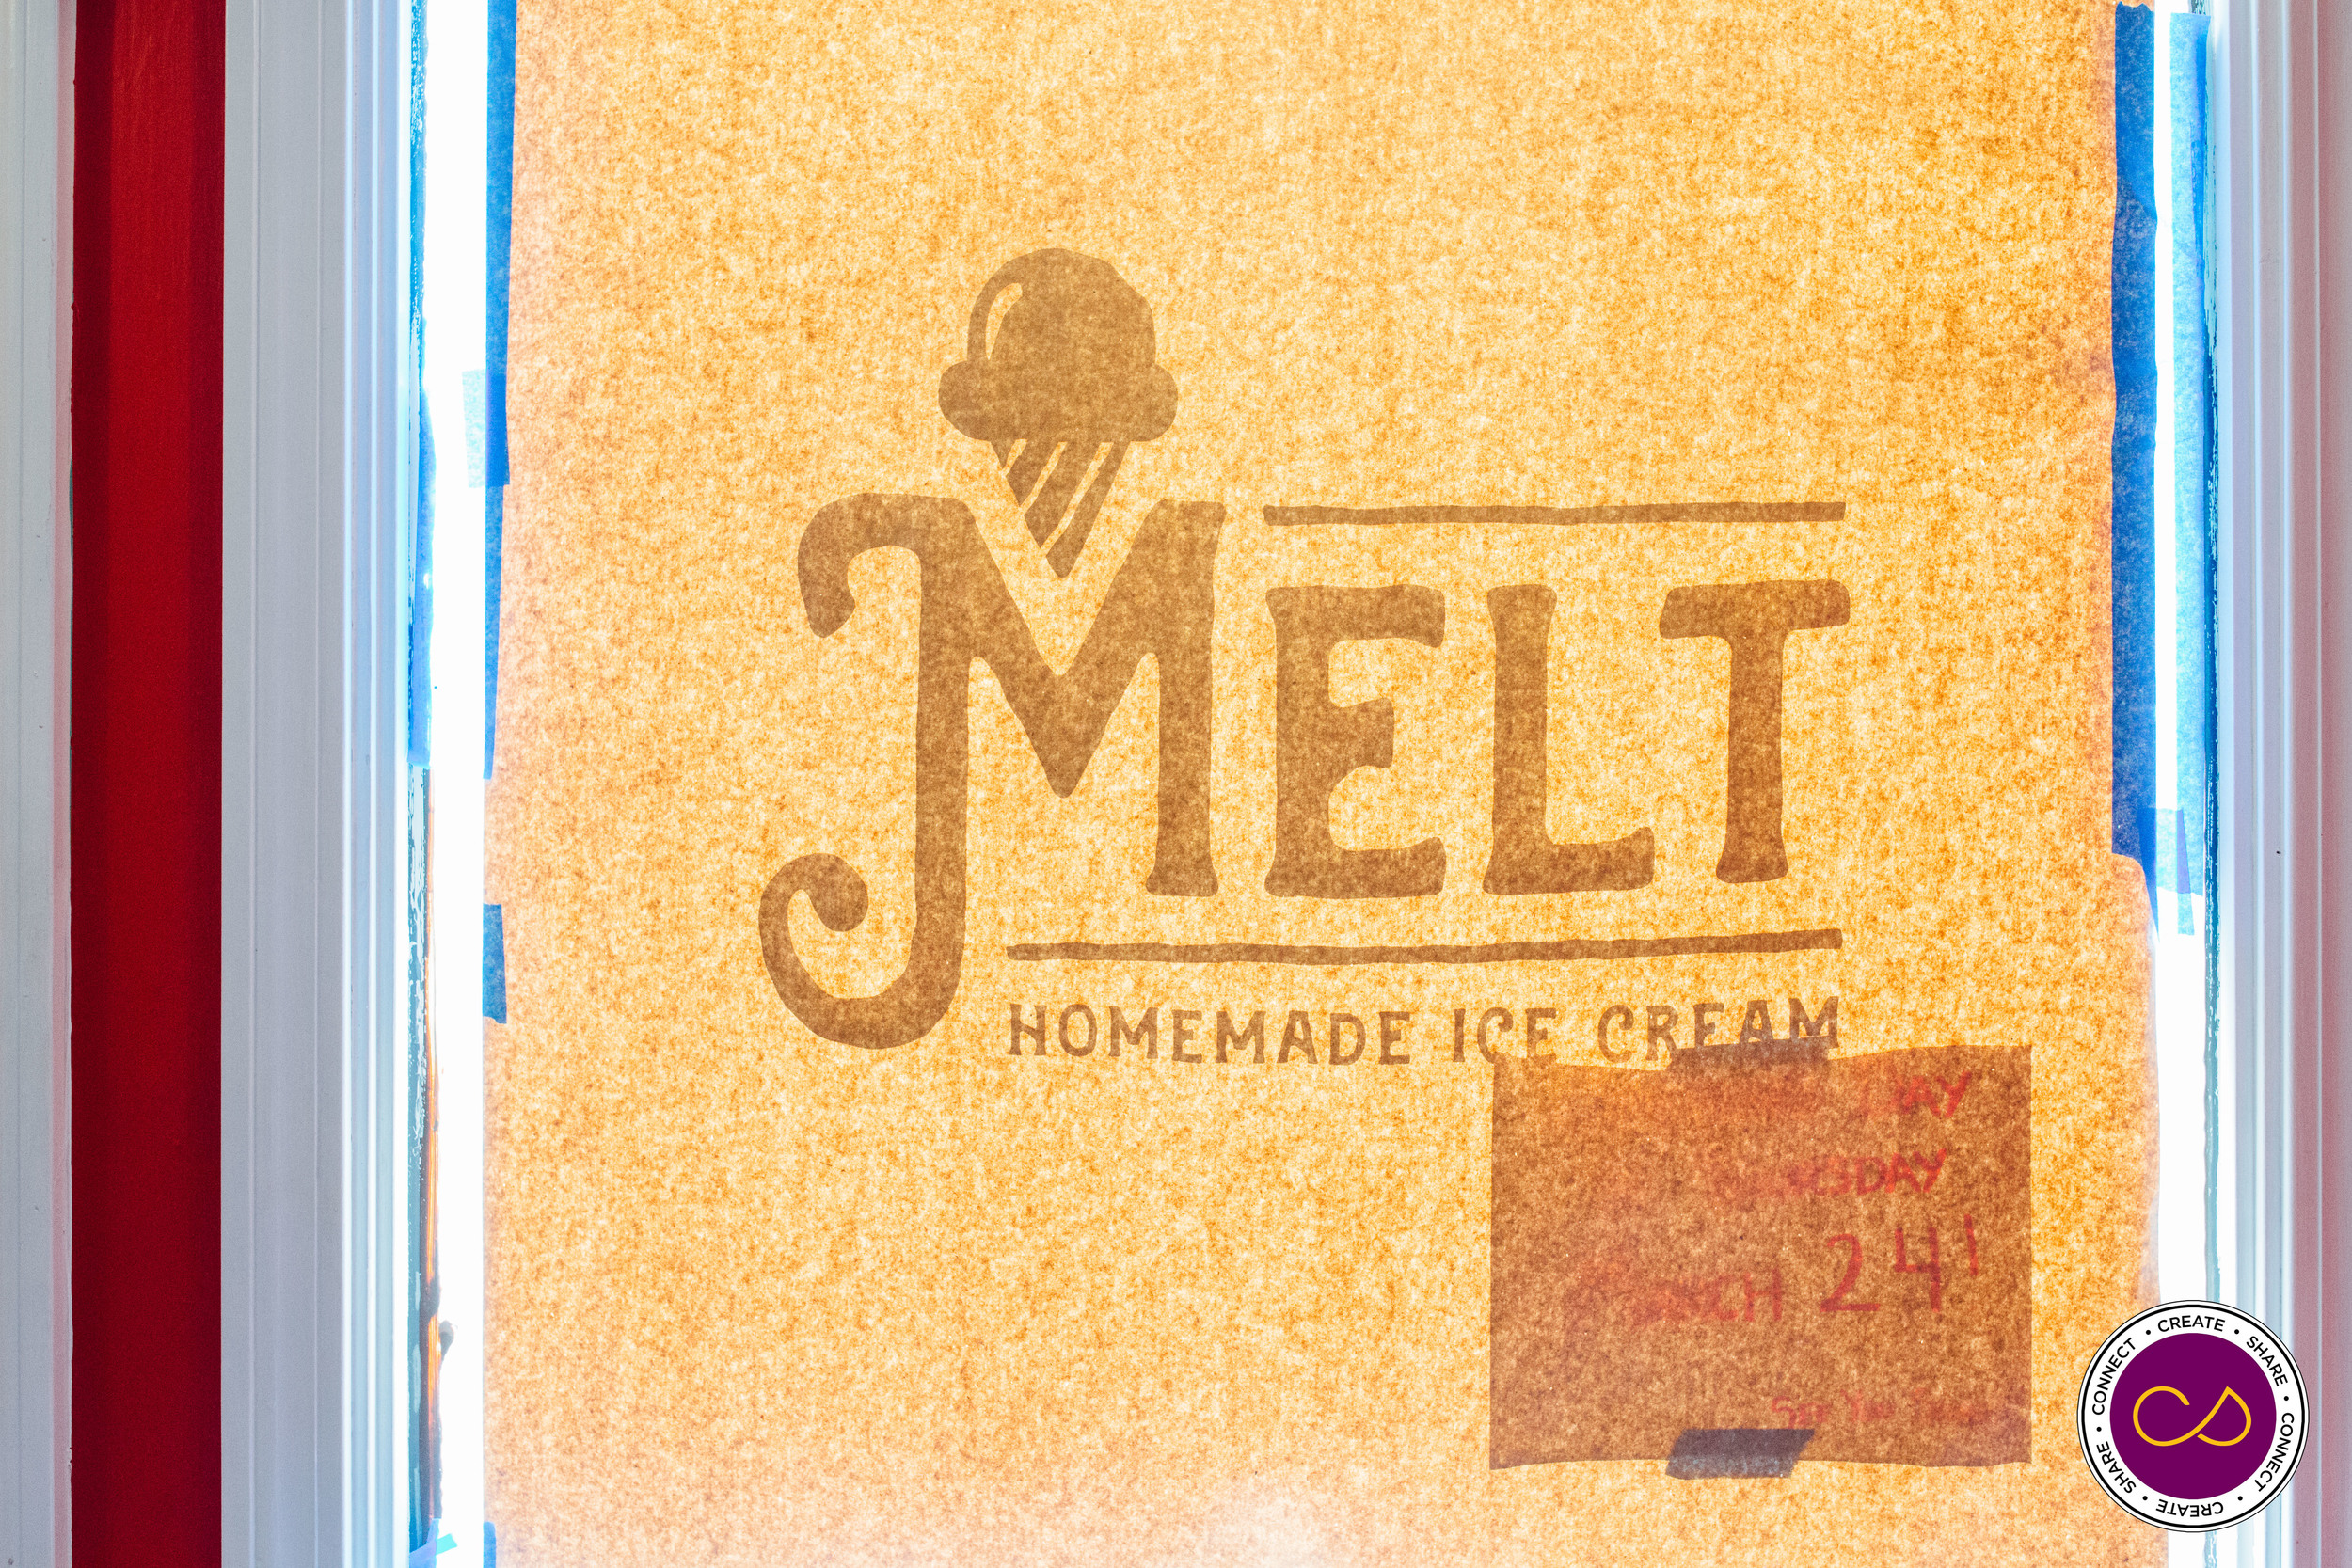 Melt Ice Cream collaboration with Salem Main Streets and Creative Salem_0427.jpg